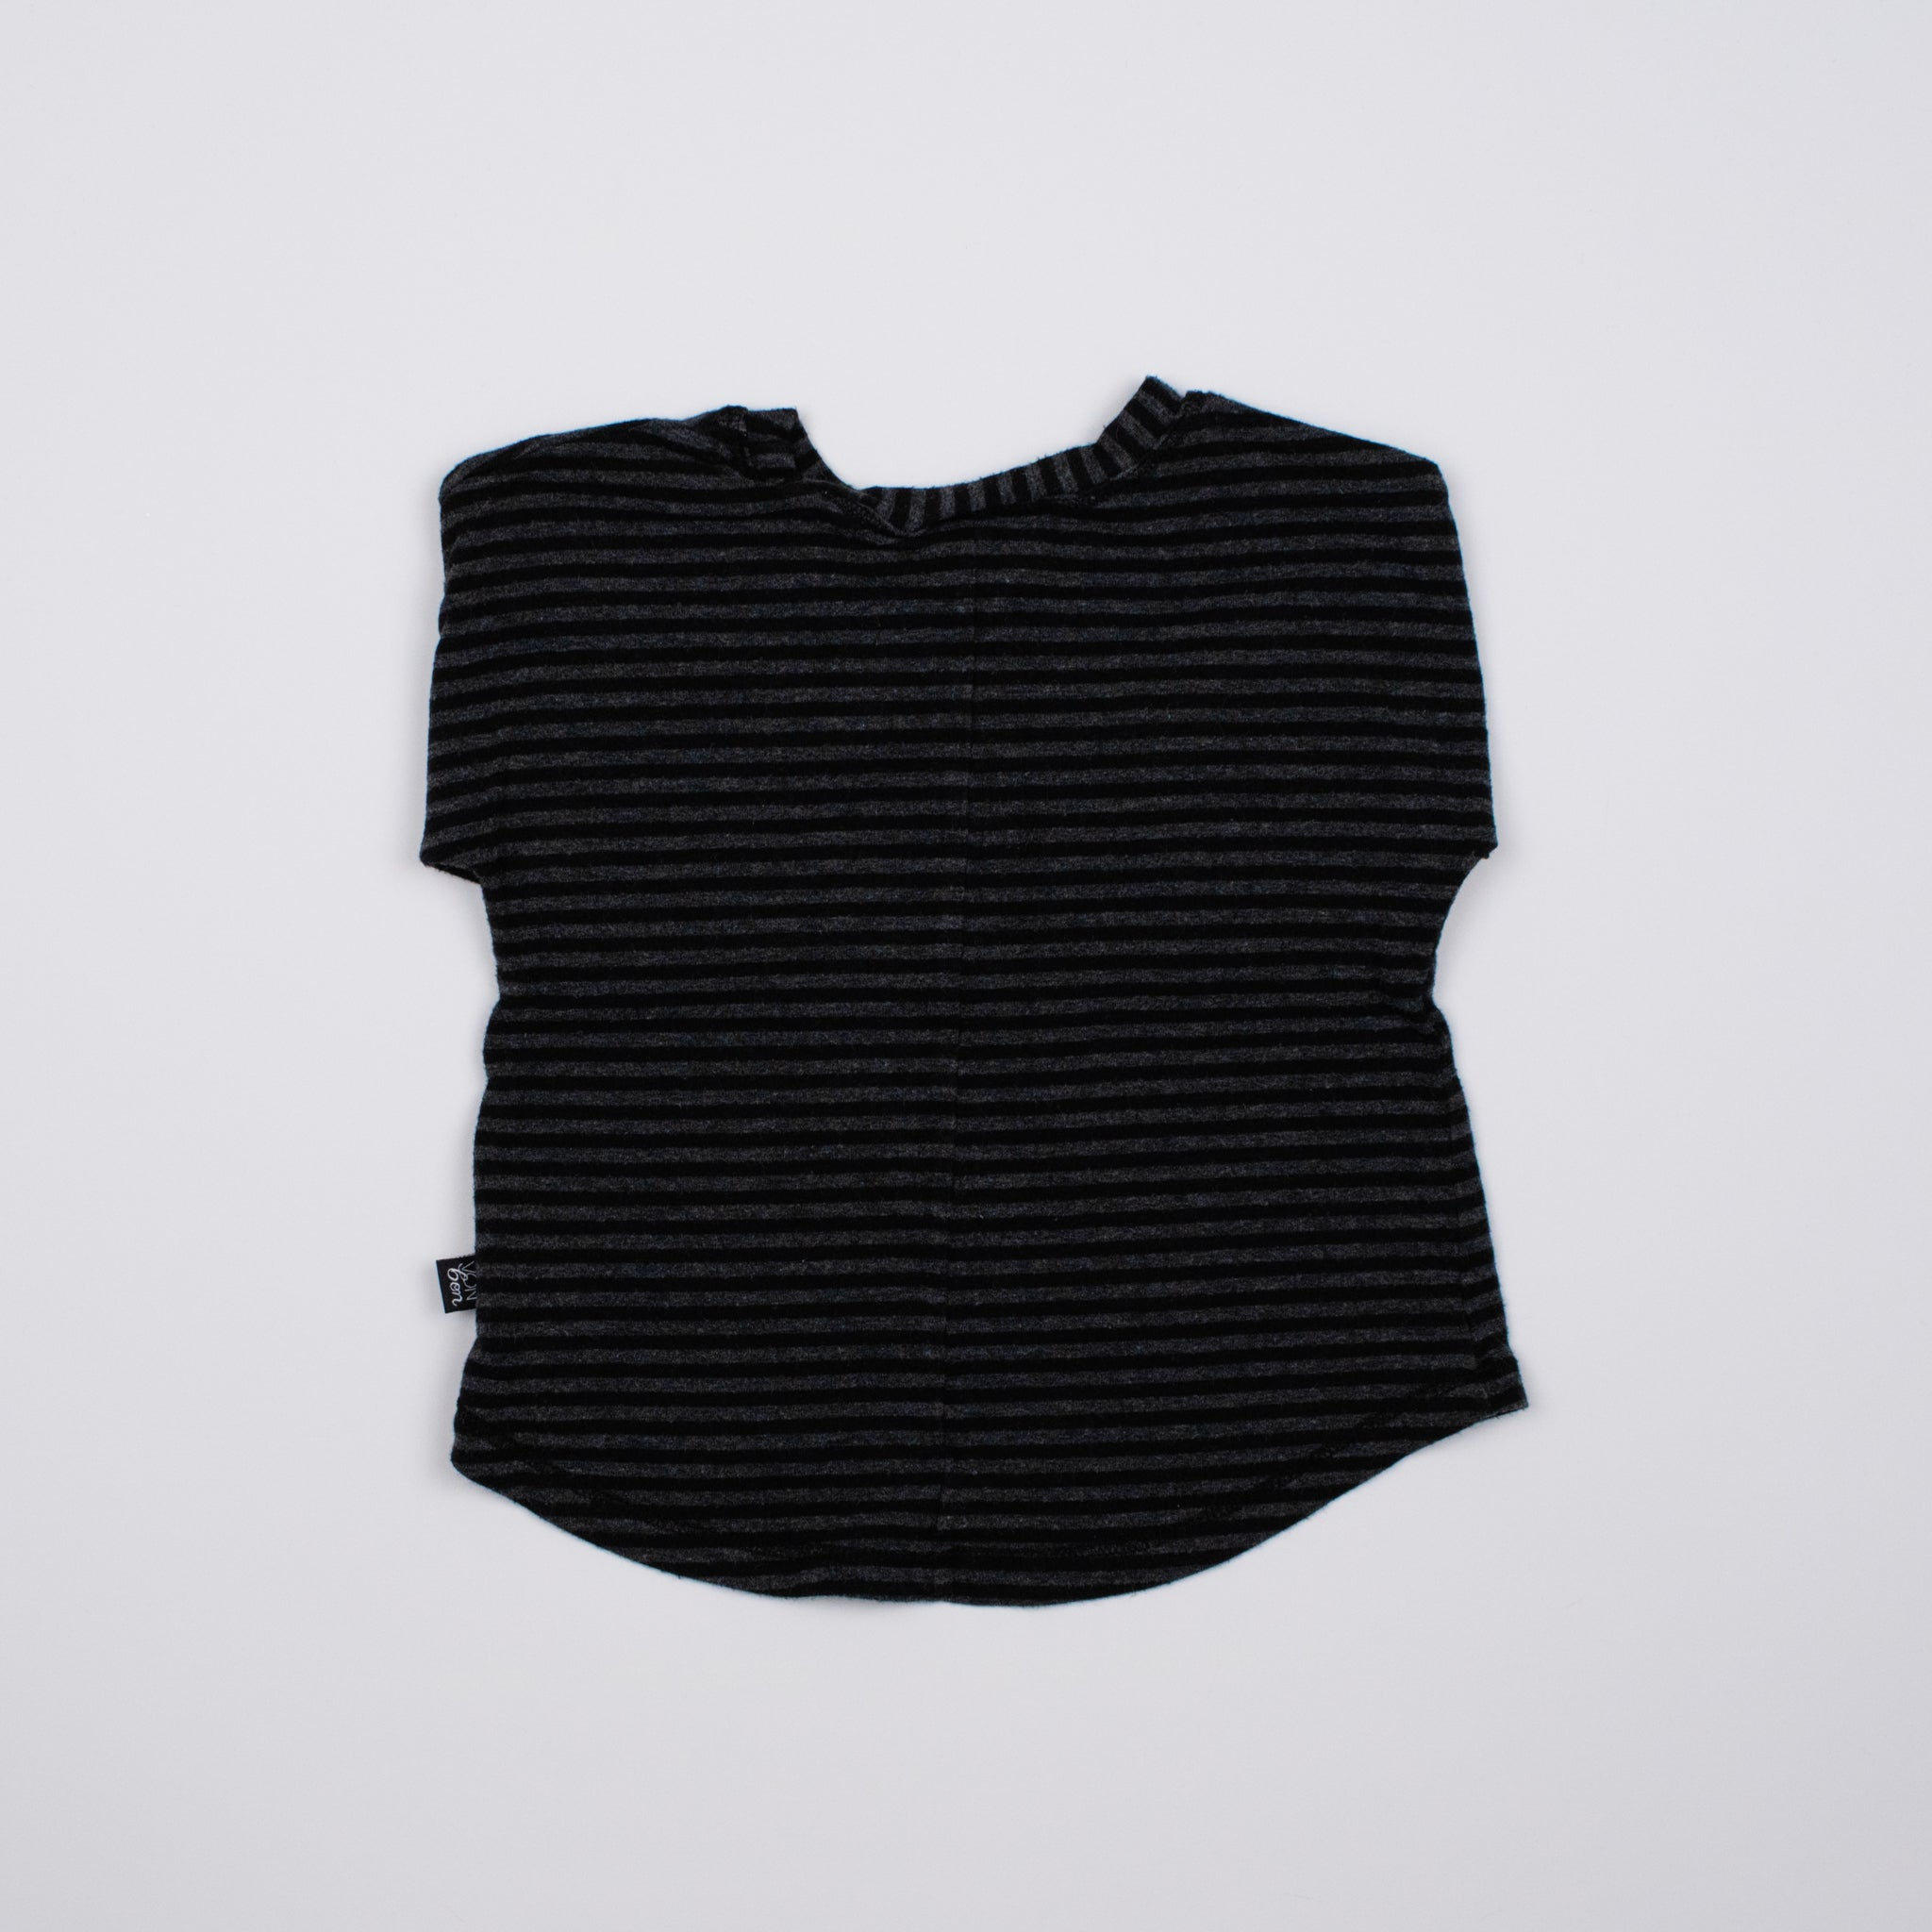 Black/Grey Stripe 3/4 Sleeve Tee 0-1Y